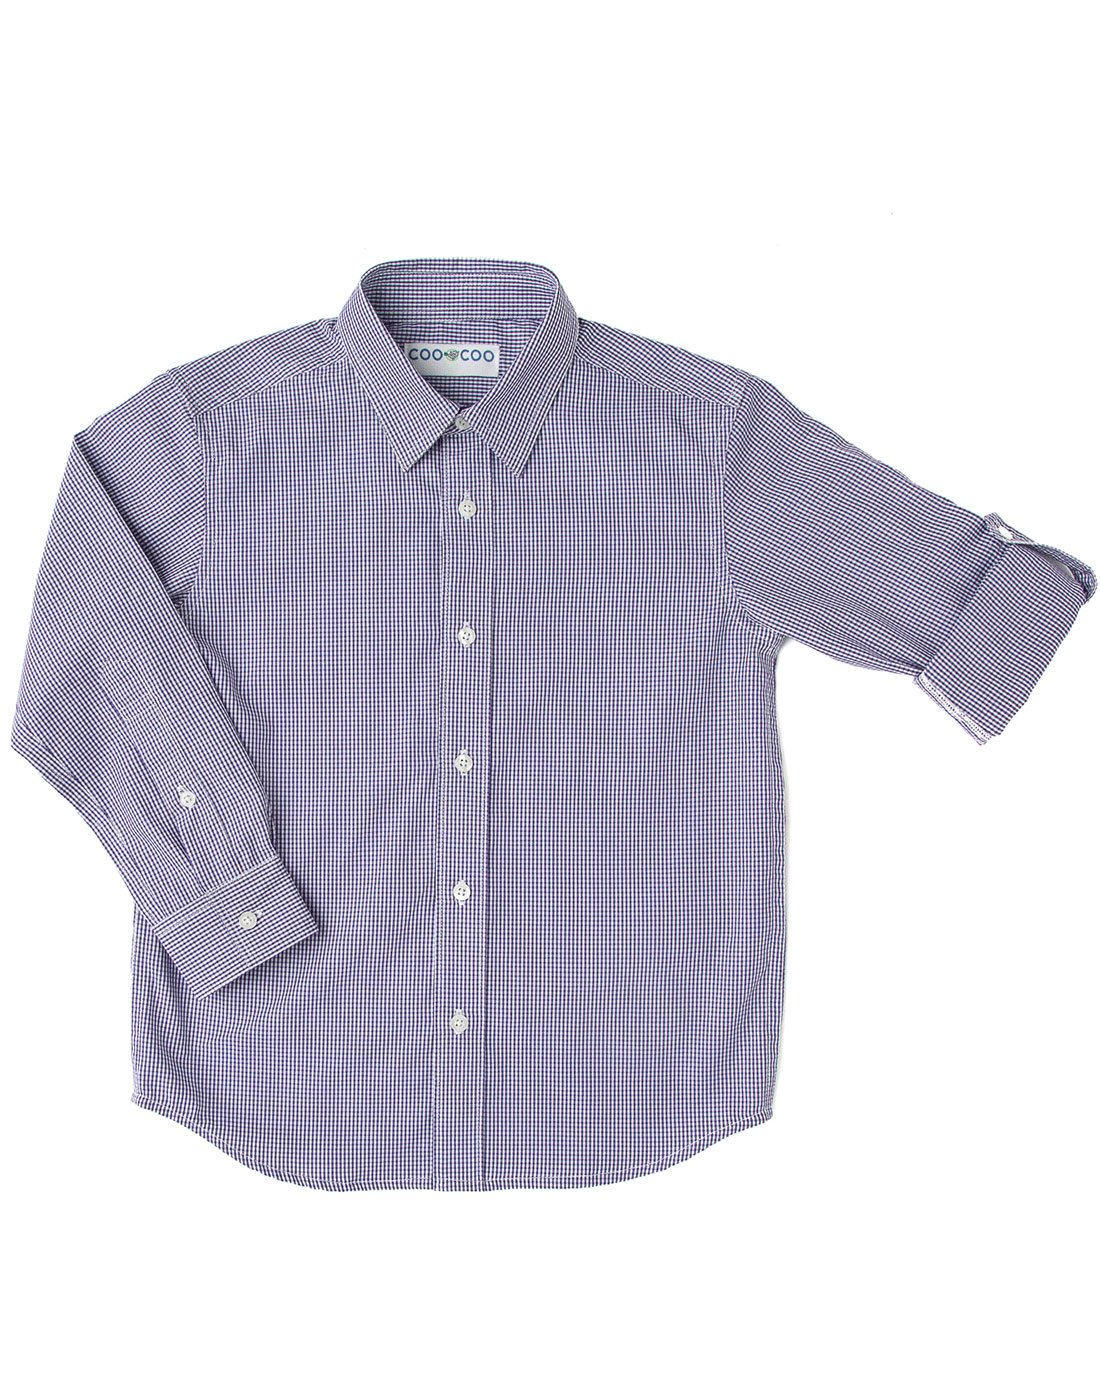 Purple Checks Shirt